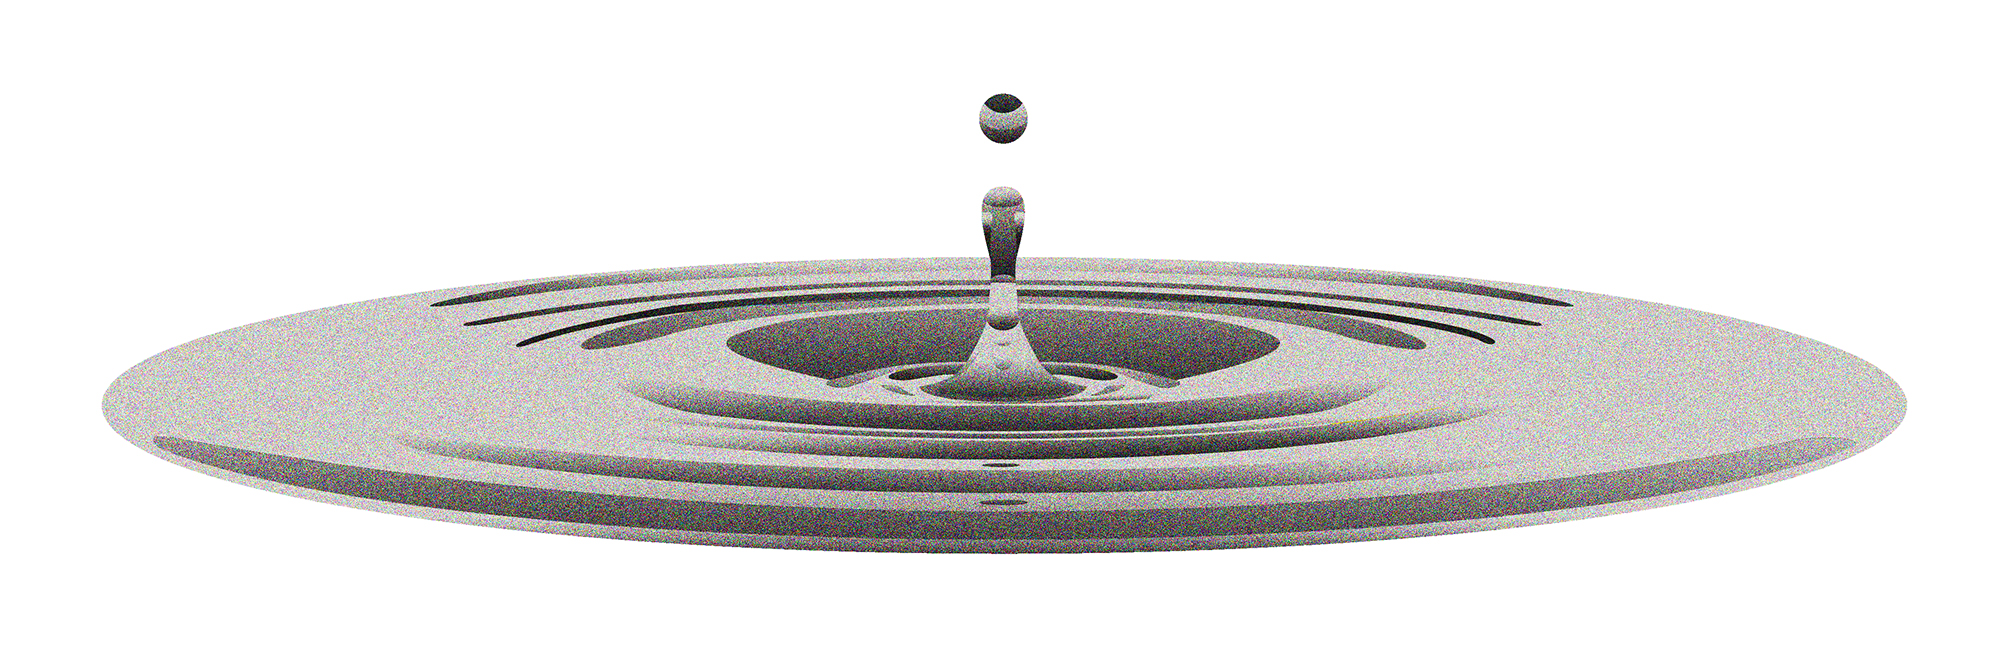 water_drop-crop.jpg